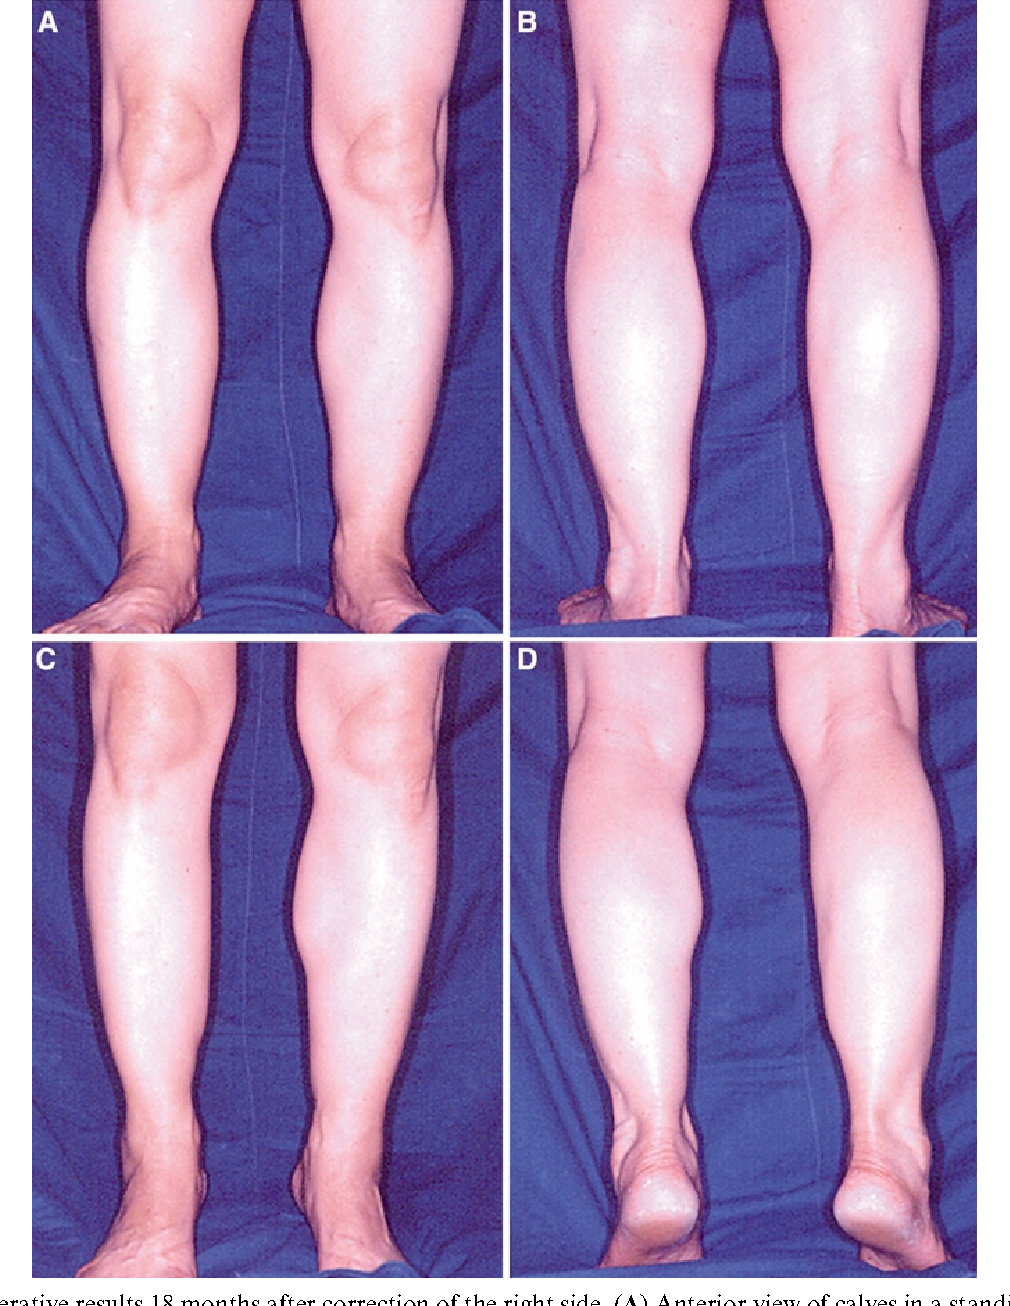 Compensatory Hypertrophy Of Calf Muscles After Selective Neurectomy